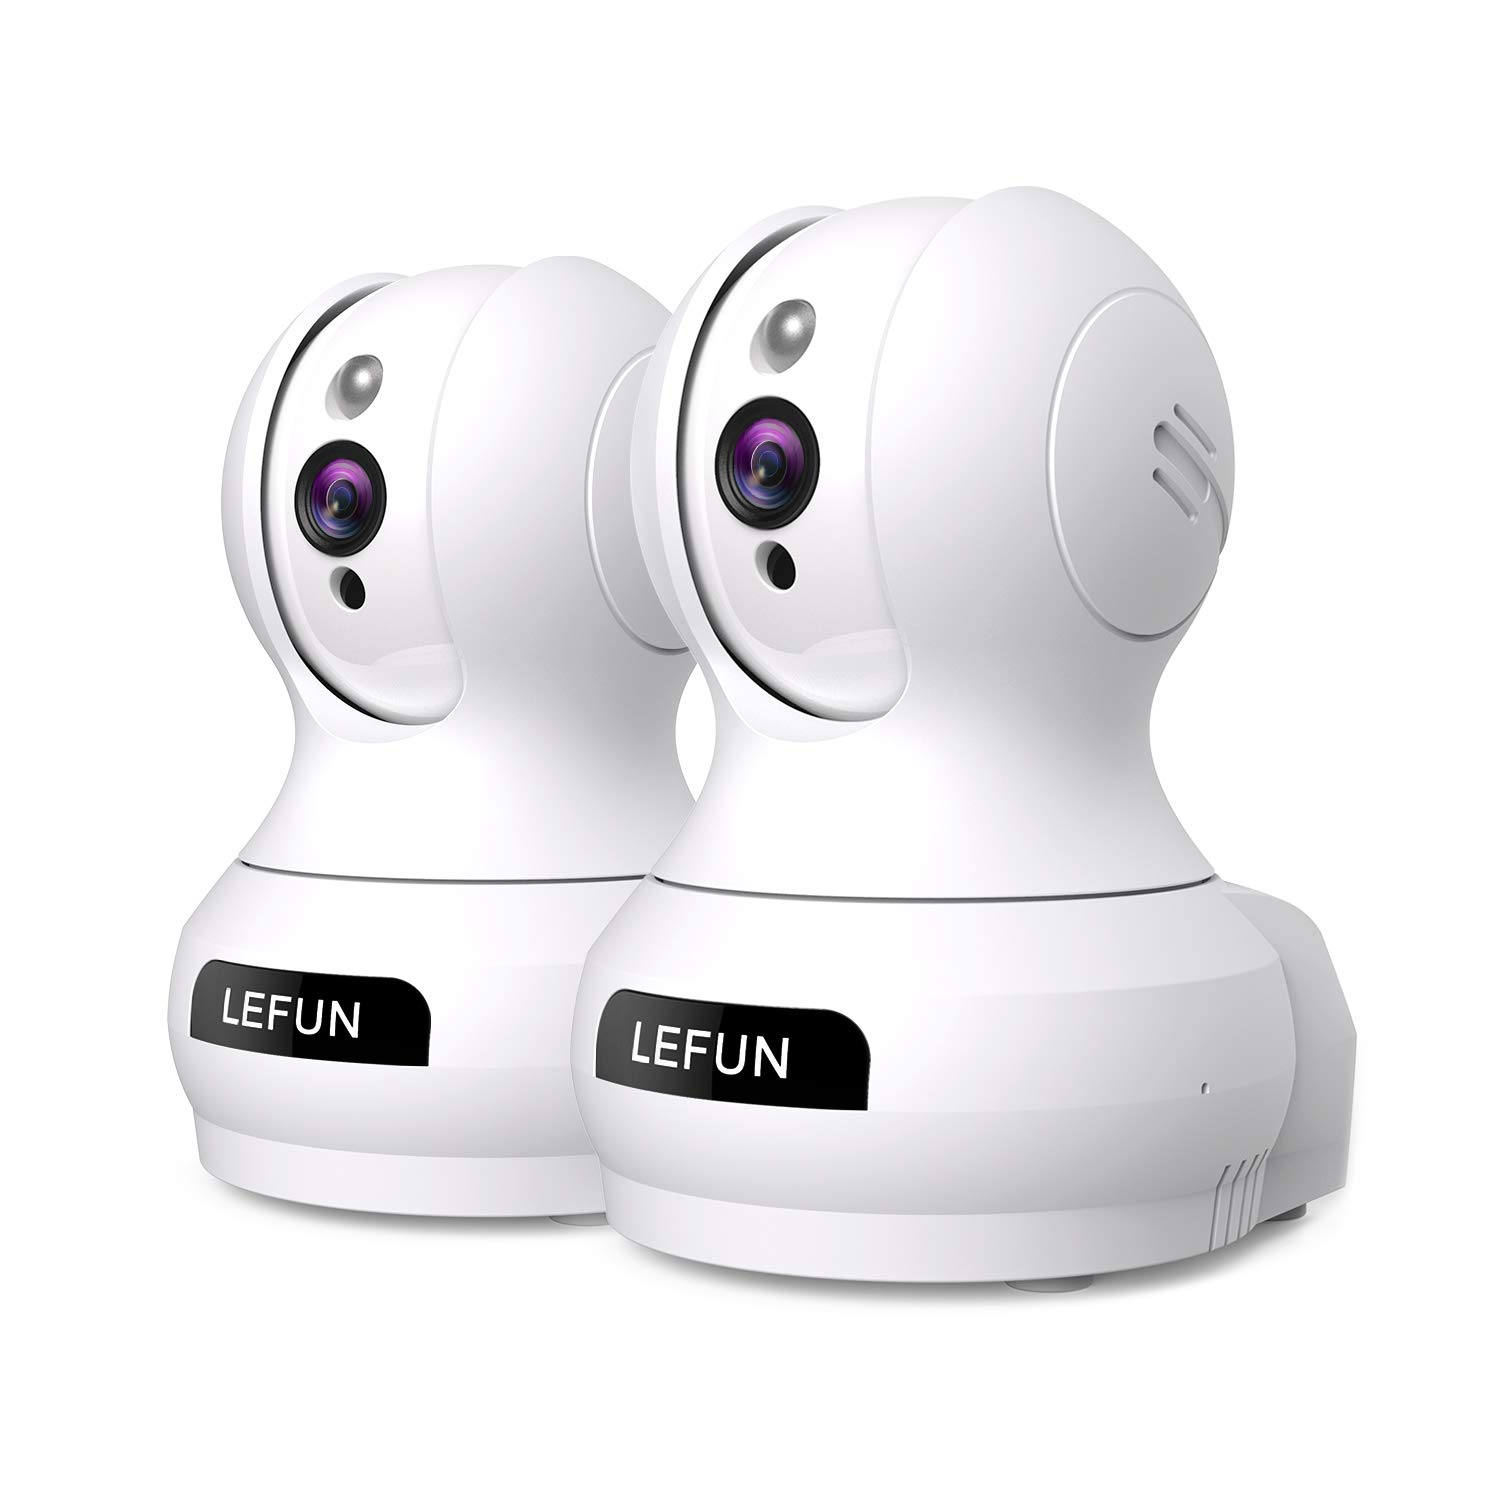 Wireless Lefun Surveillance Monitoring 2pack White